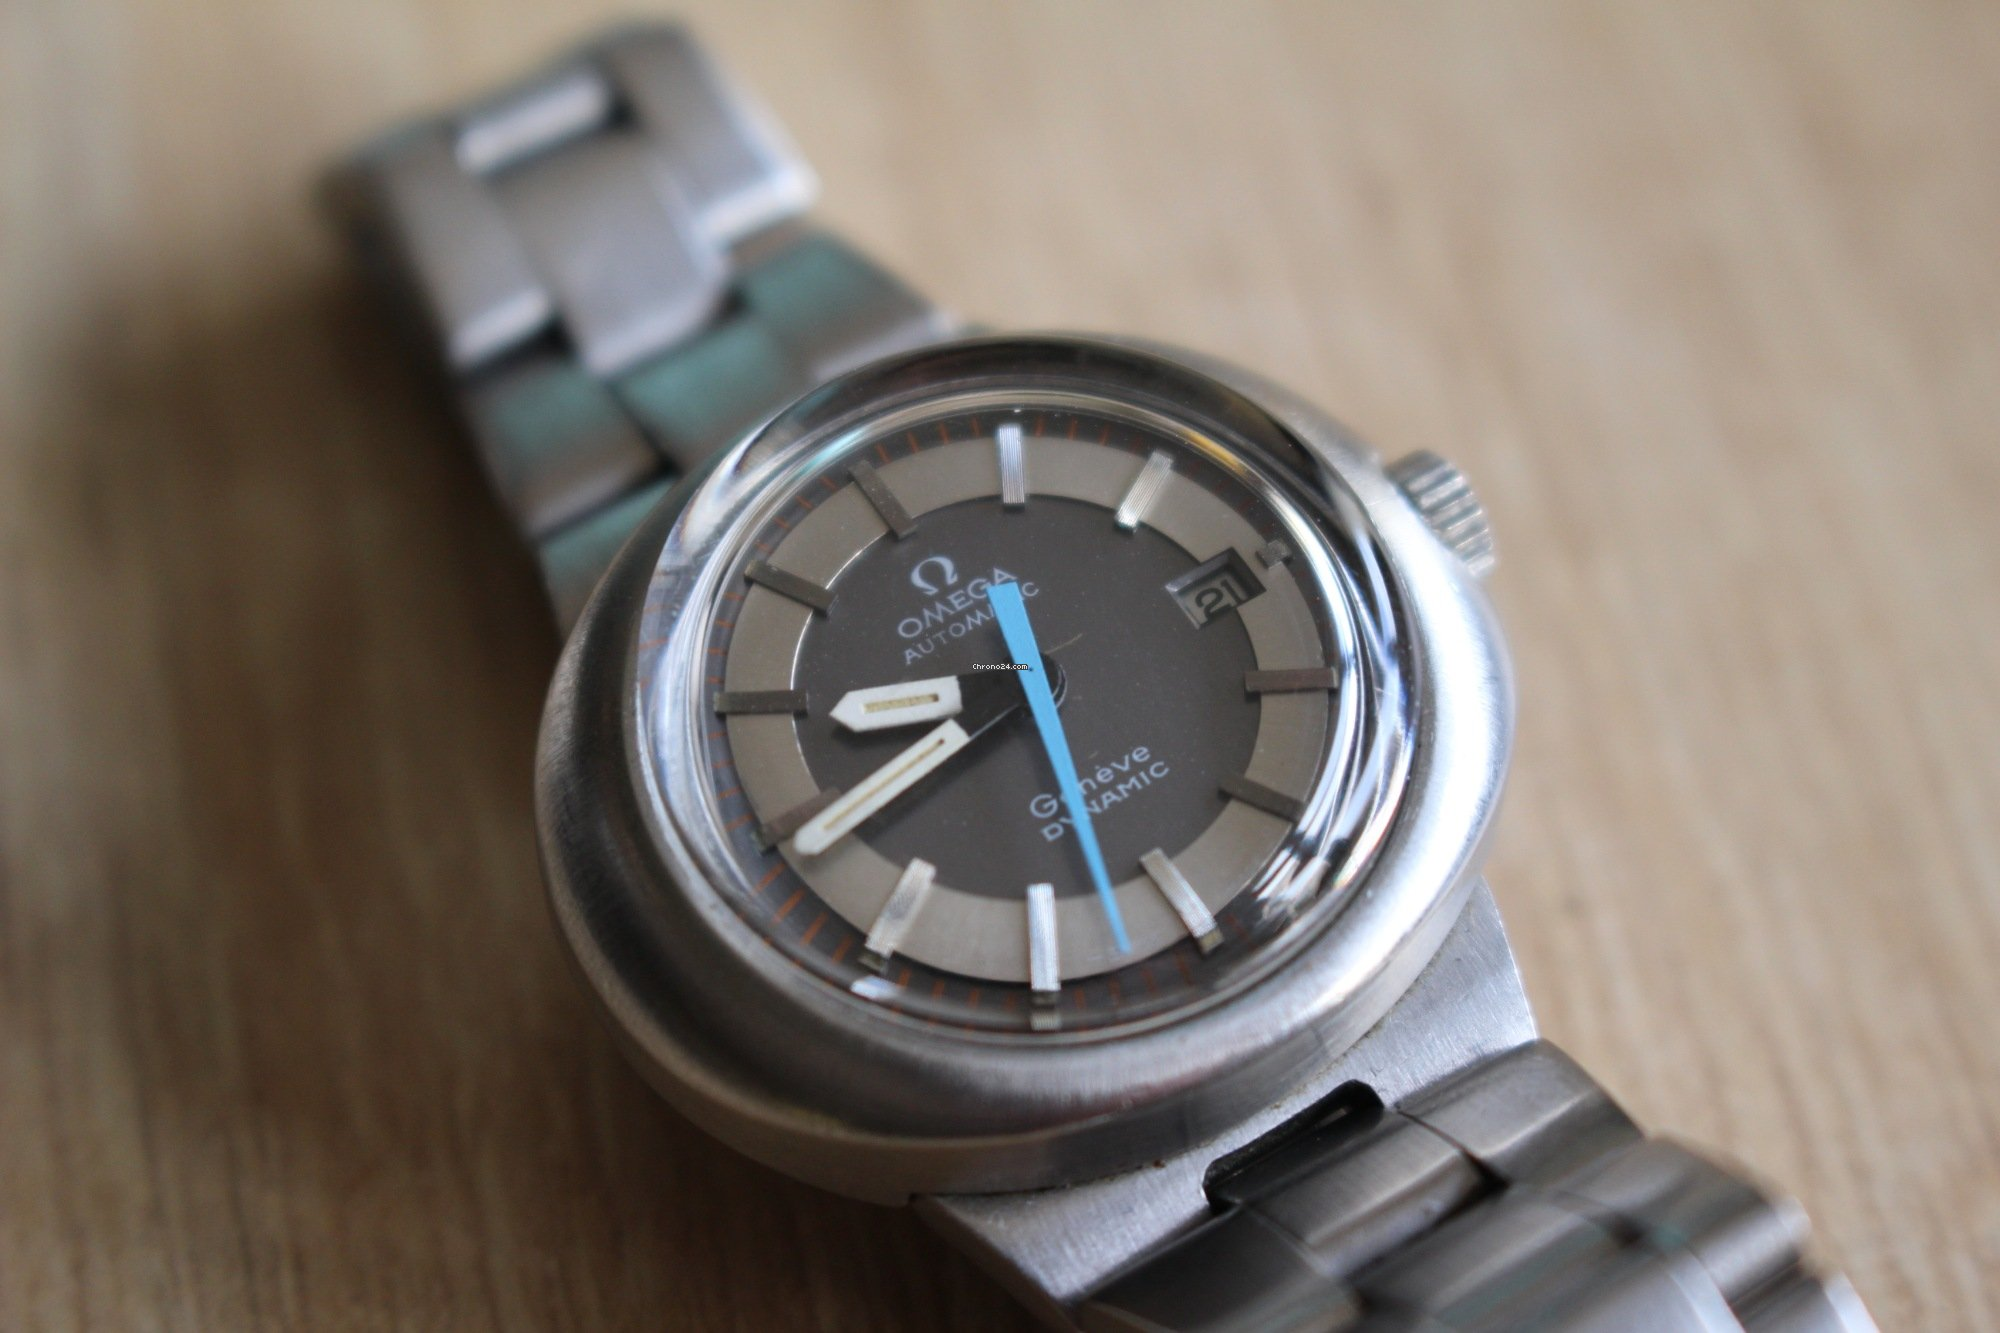 Omega Genève Dynamique 1970 for AU$ 1,290 for sale from a